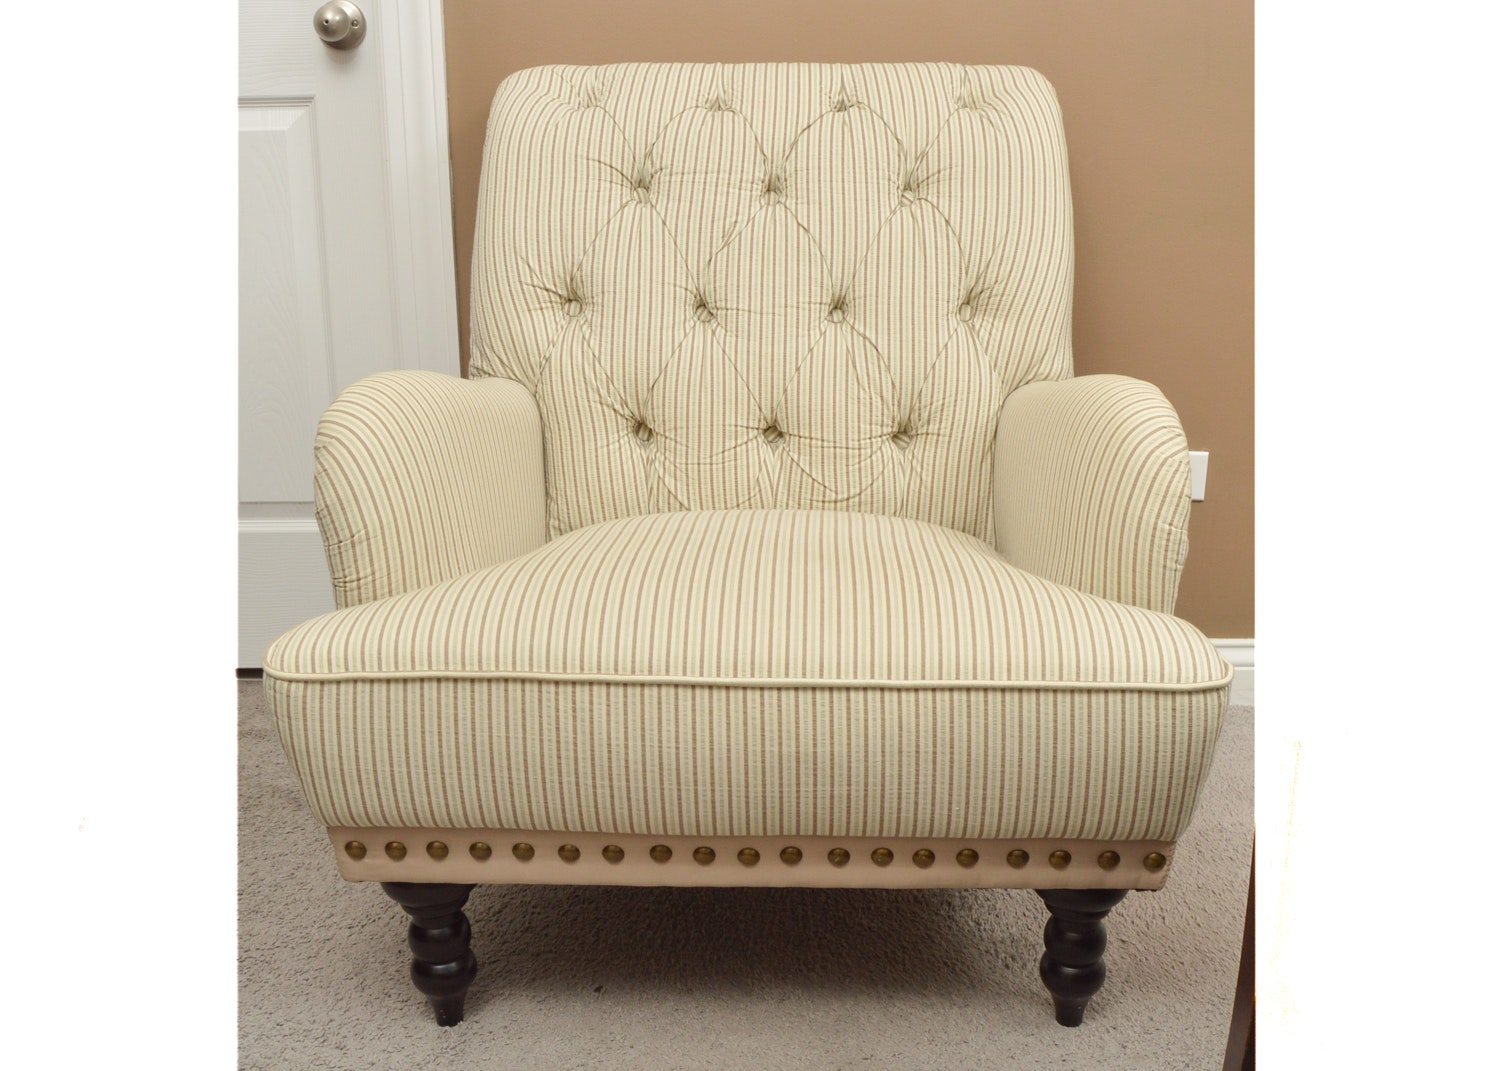 Pier 1 Imports Striped Upholstered Armchair ...